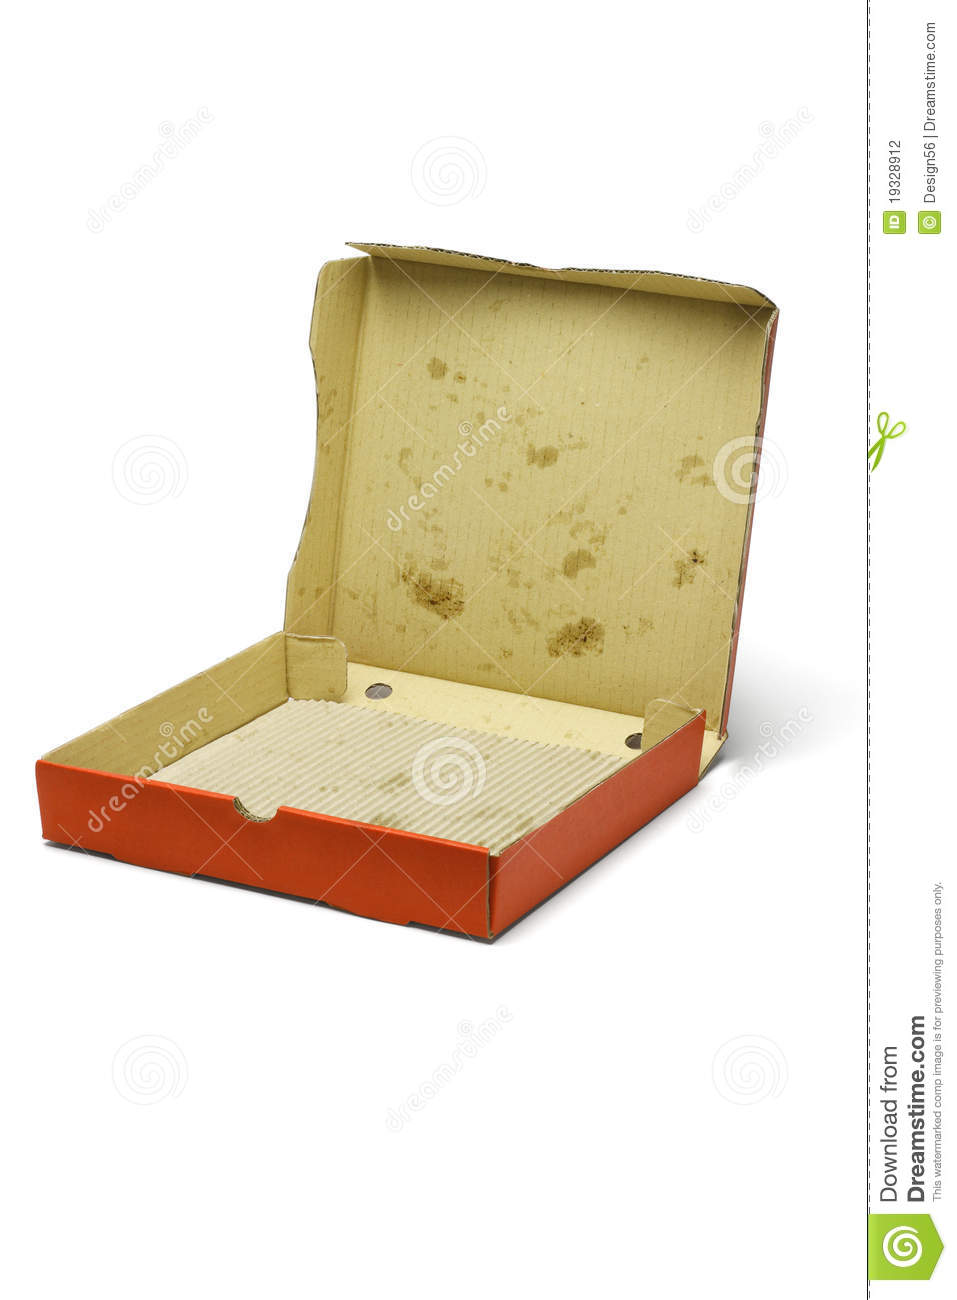 Empty Pizza Delivery Box Stock Photography - Image: 19328912